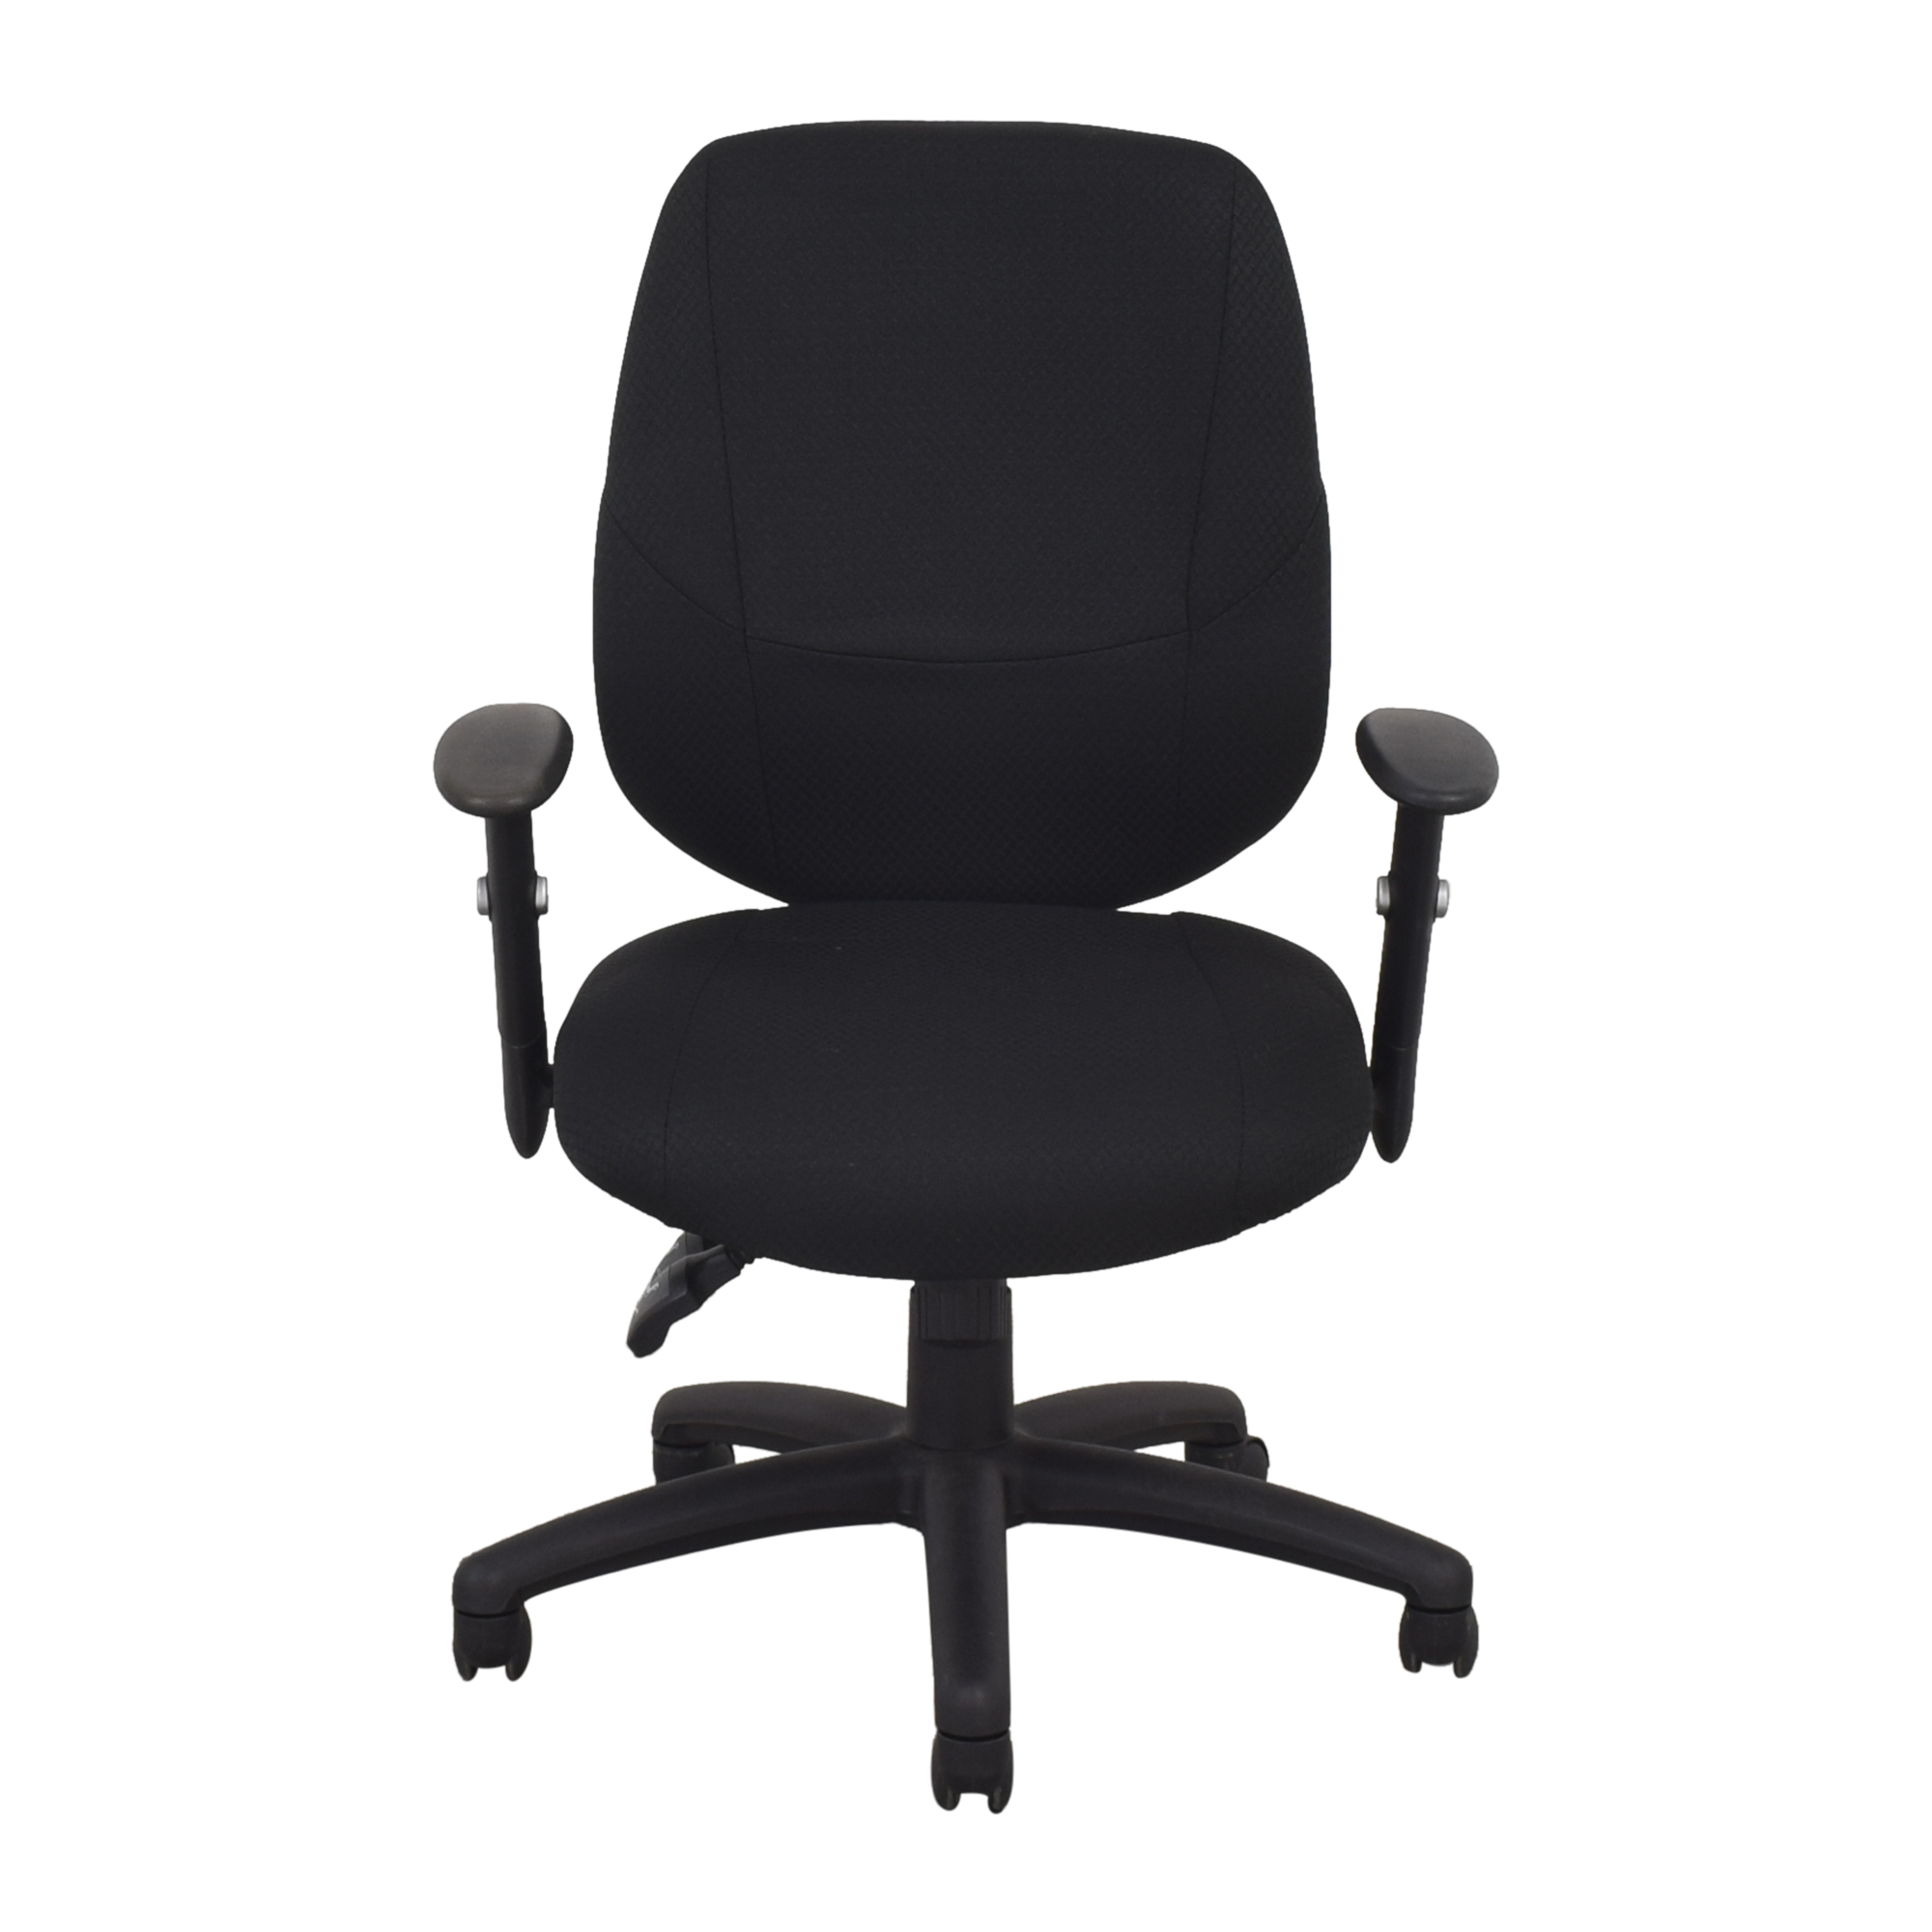 Offices to Go Offices to Go Adjustable Office Chair